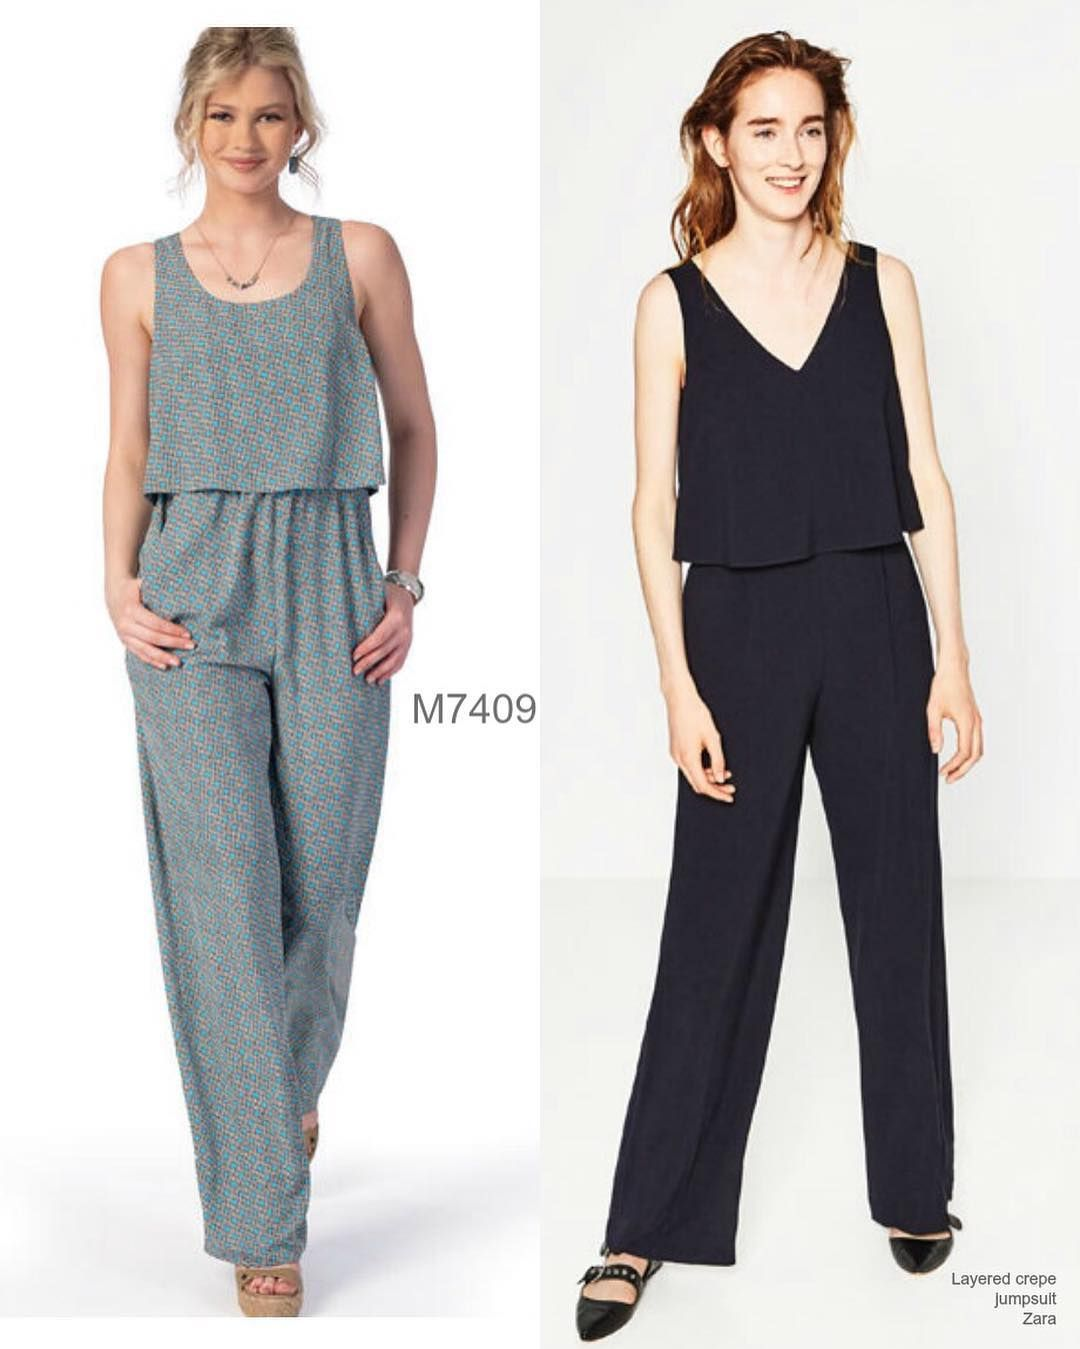 Yes to the jumpsuit that looks like two pieces buthellip pattens